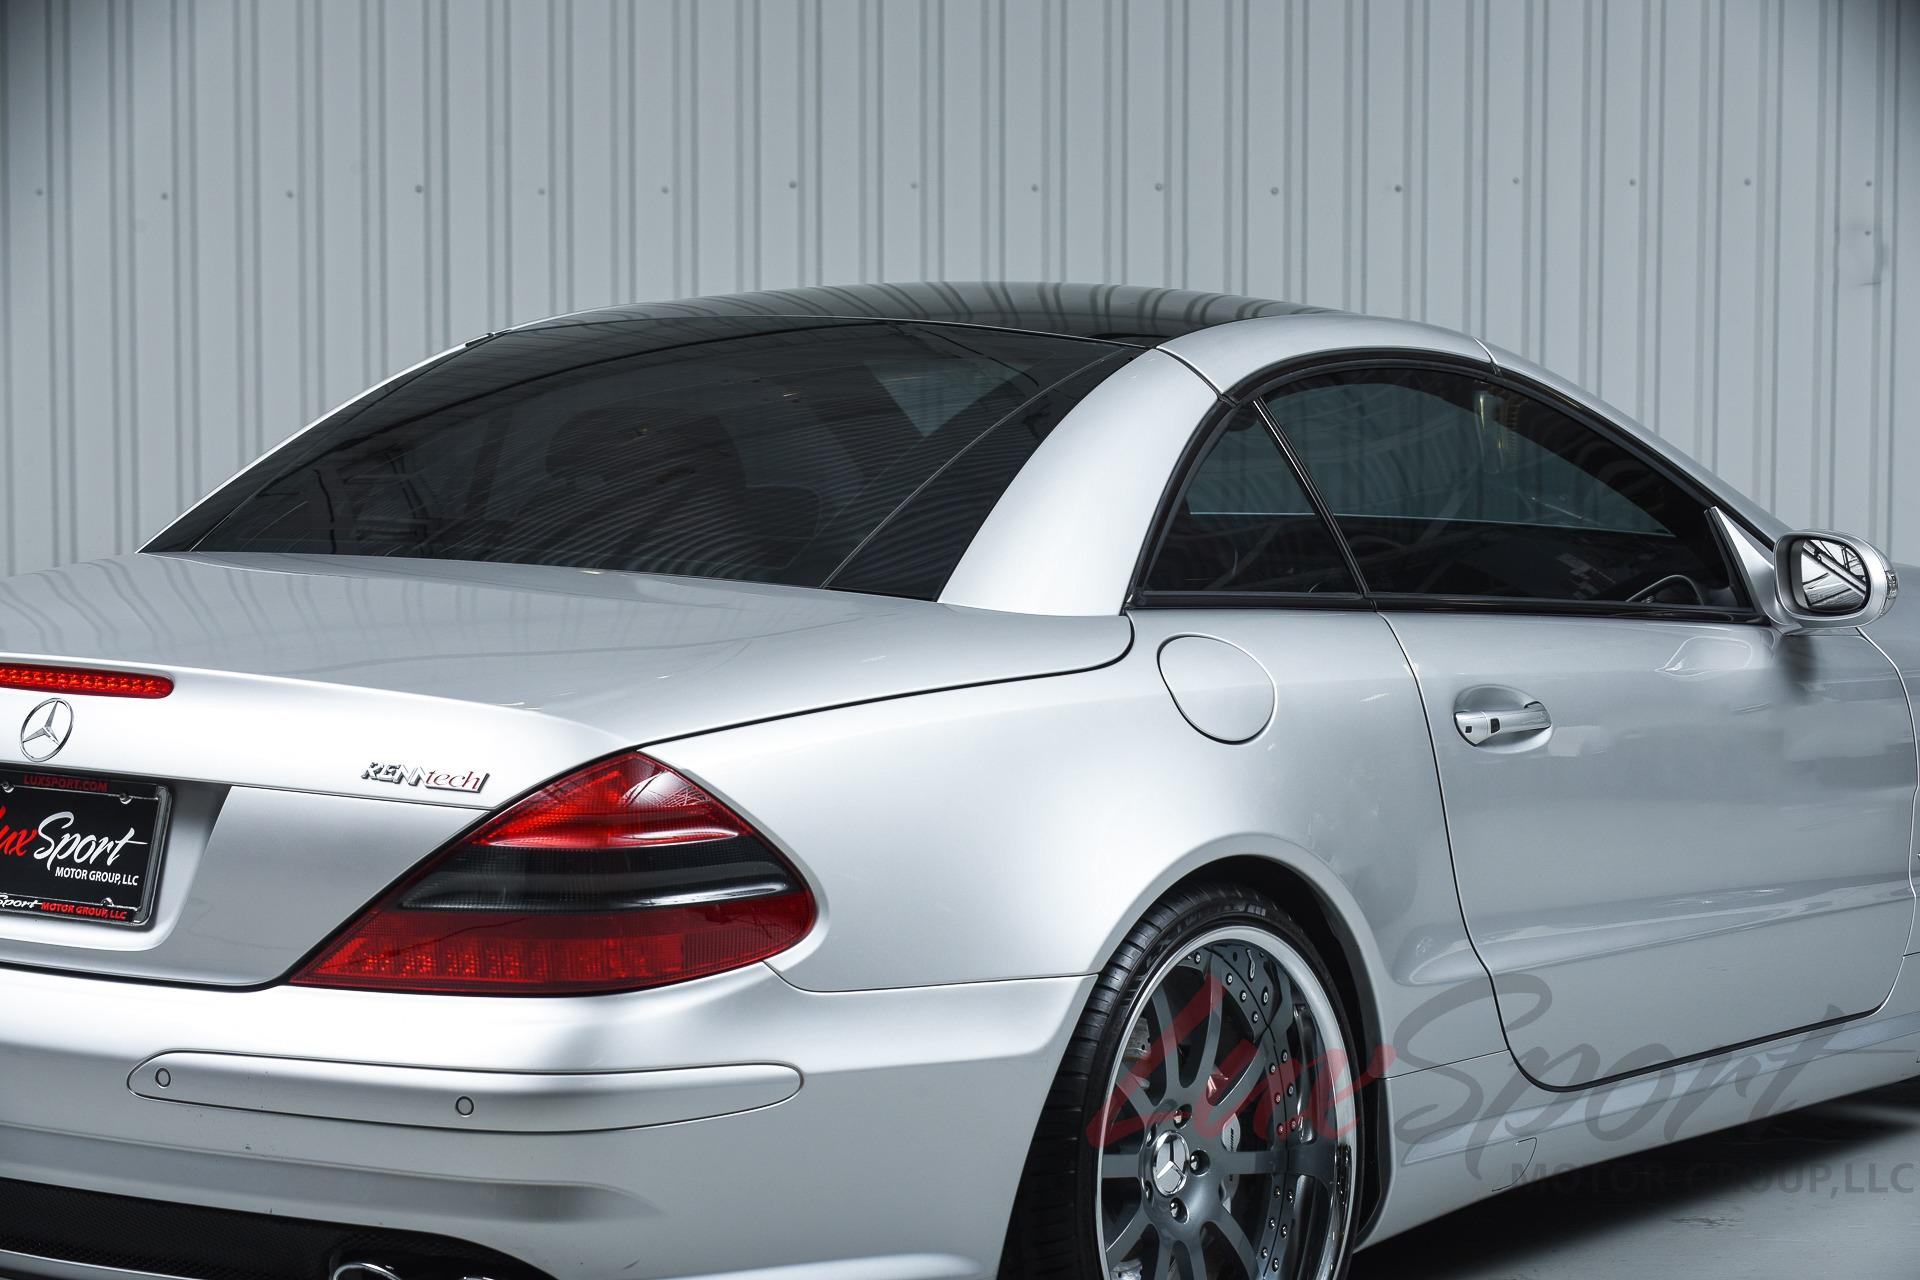 Used 2003 Mercedes-Benz SL55 AMG RennTech  | New Hyde Park, NY